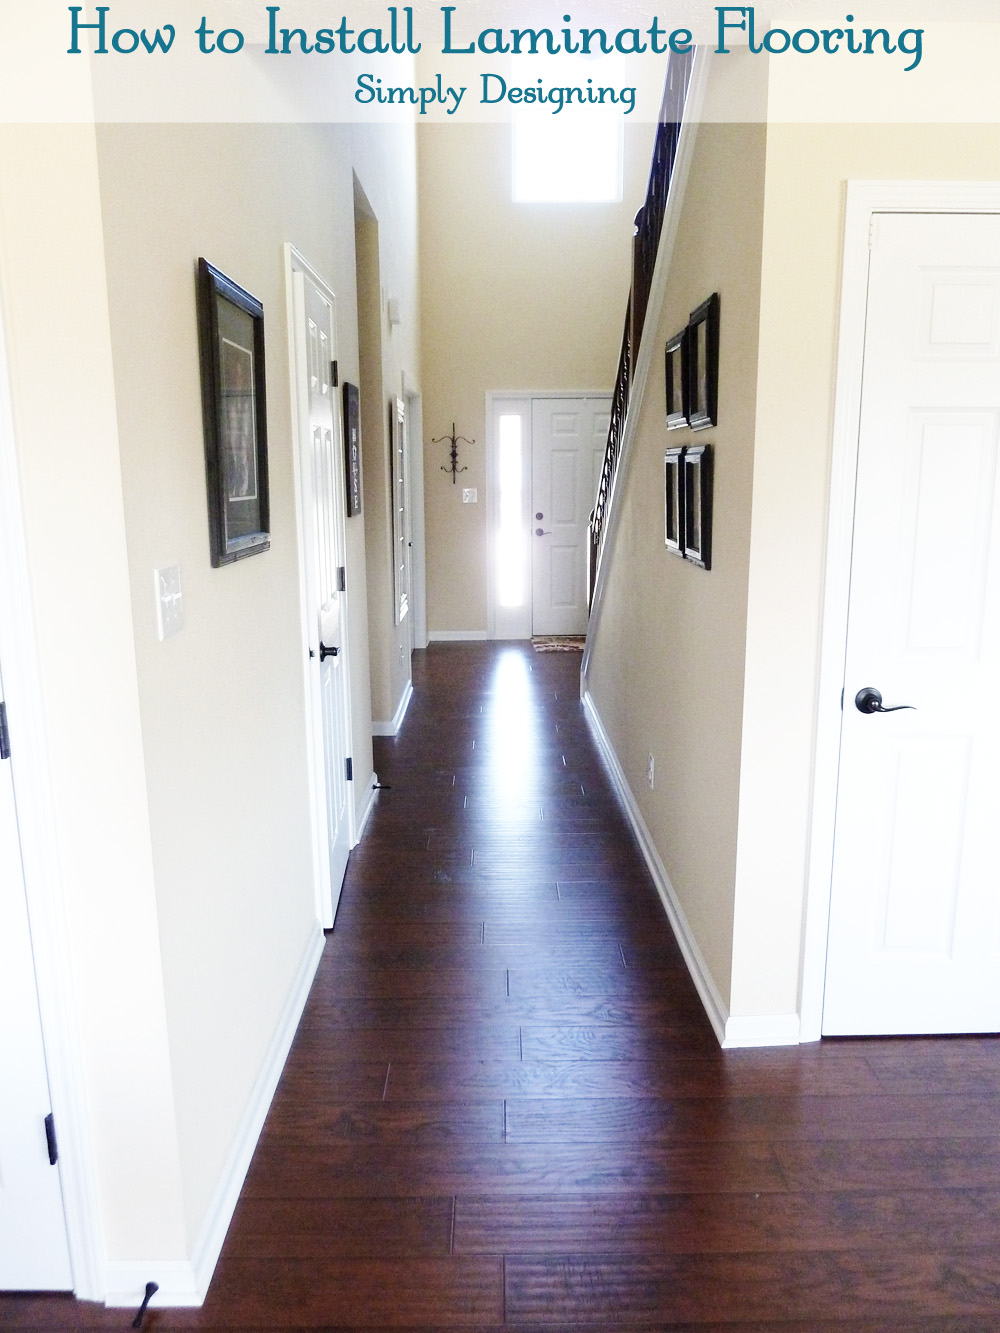 Installing laminate flooring finishing trim and choosing final photo of front hallway after laying laminate flooring solutioingenieria Choice Image